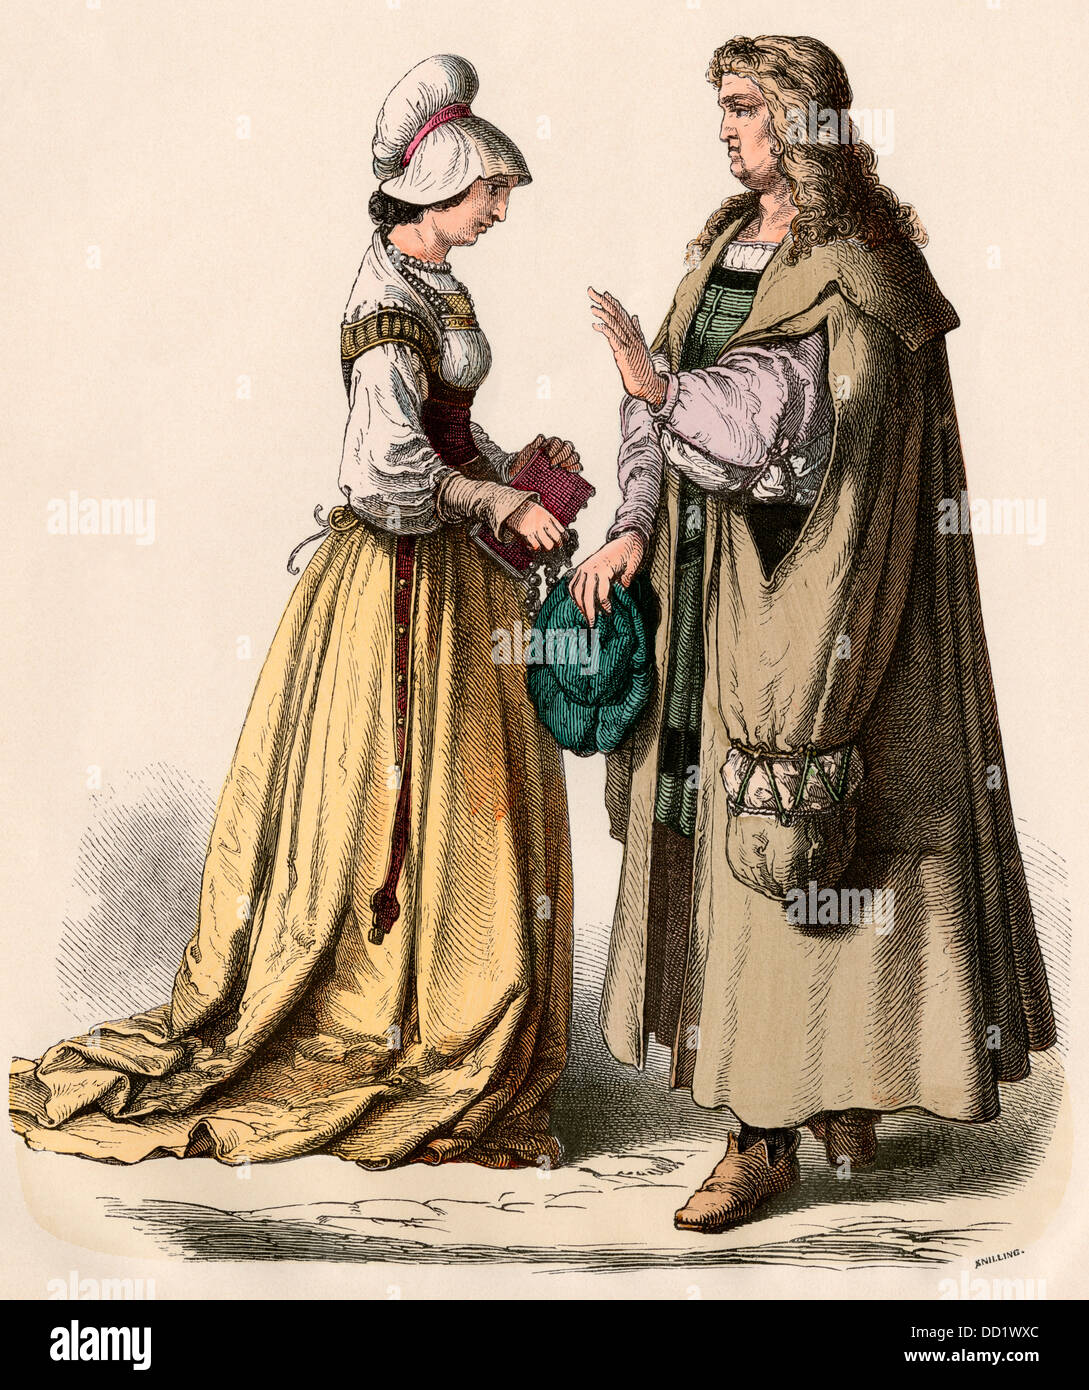 German scholar and a woman with a book, 1500s. Hand-colored print - Stock Image